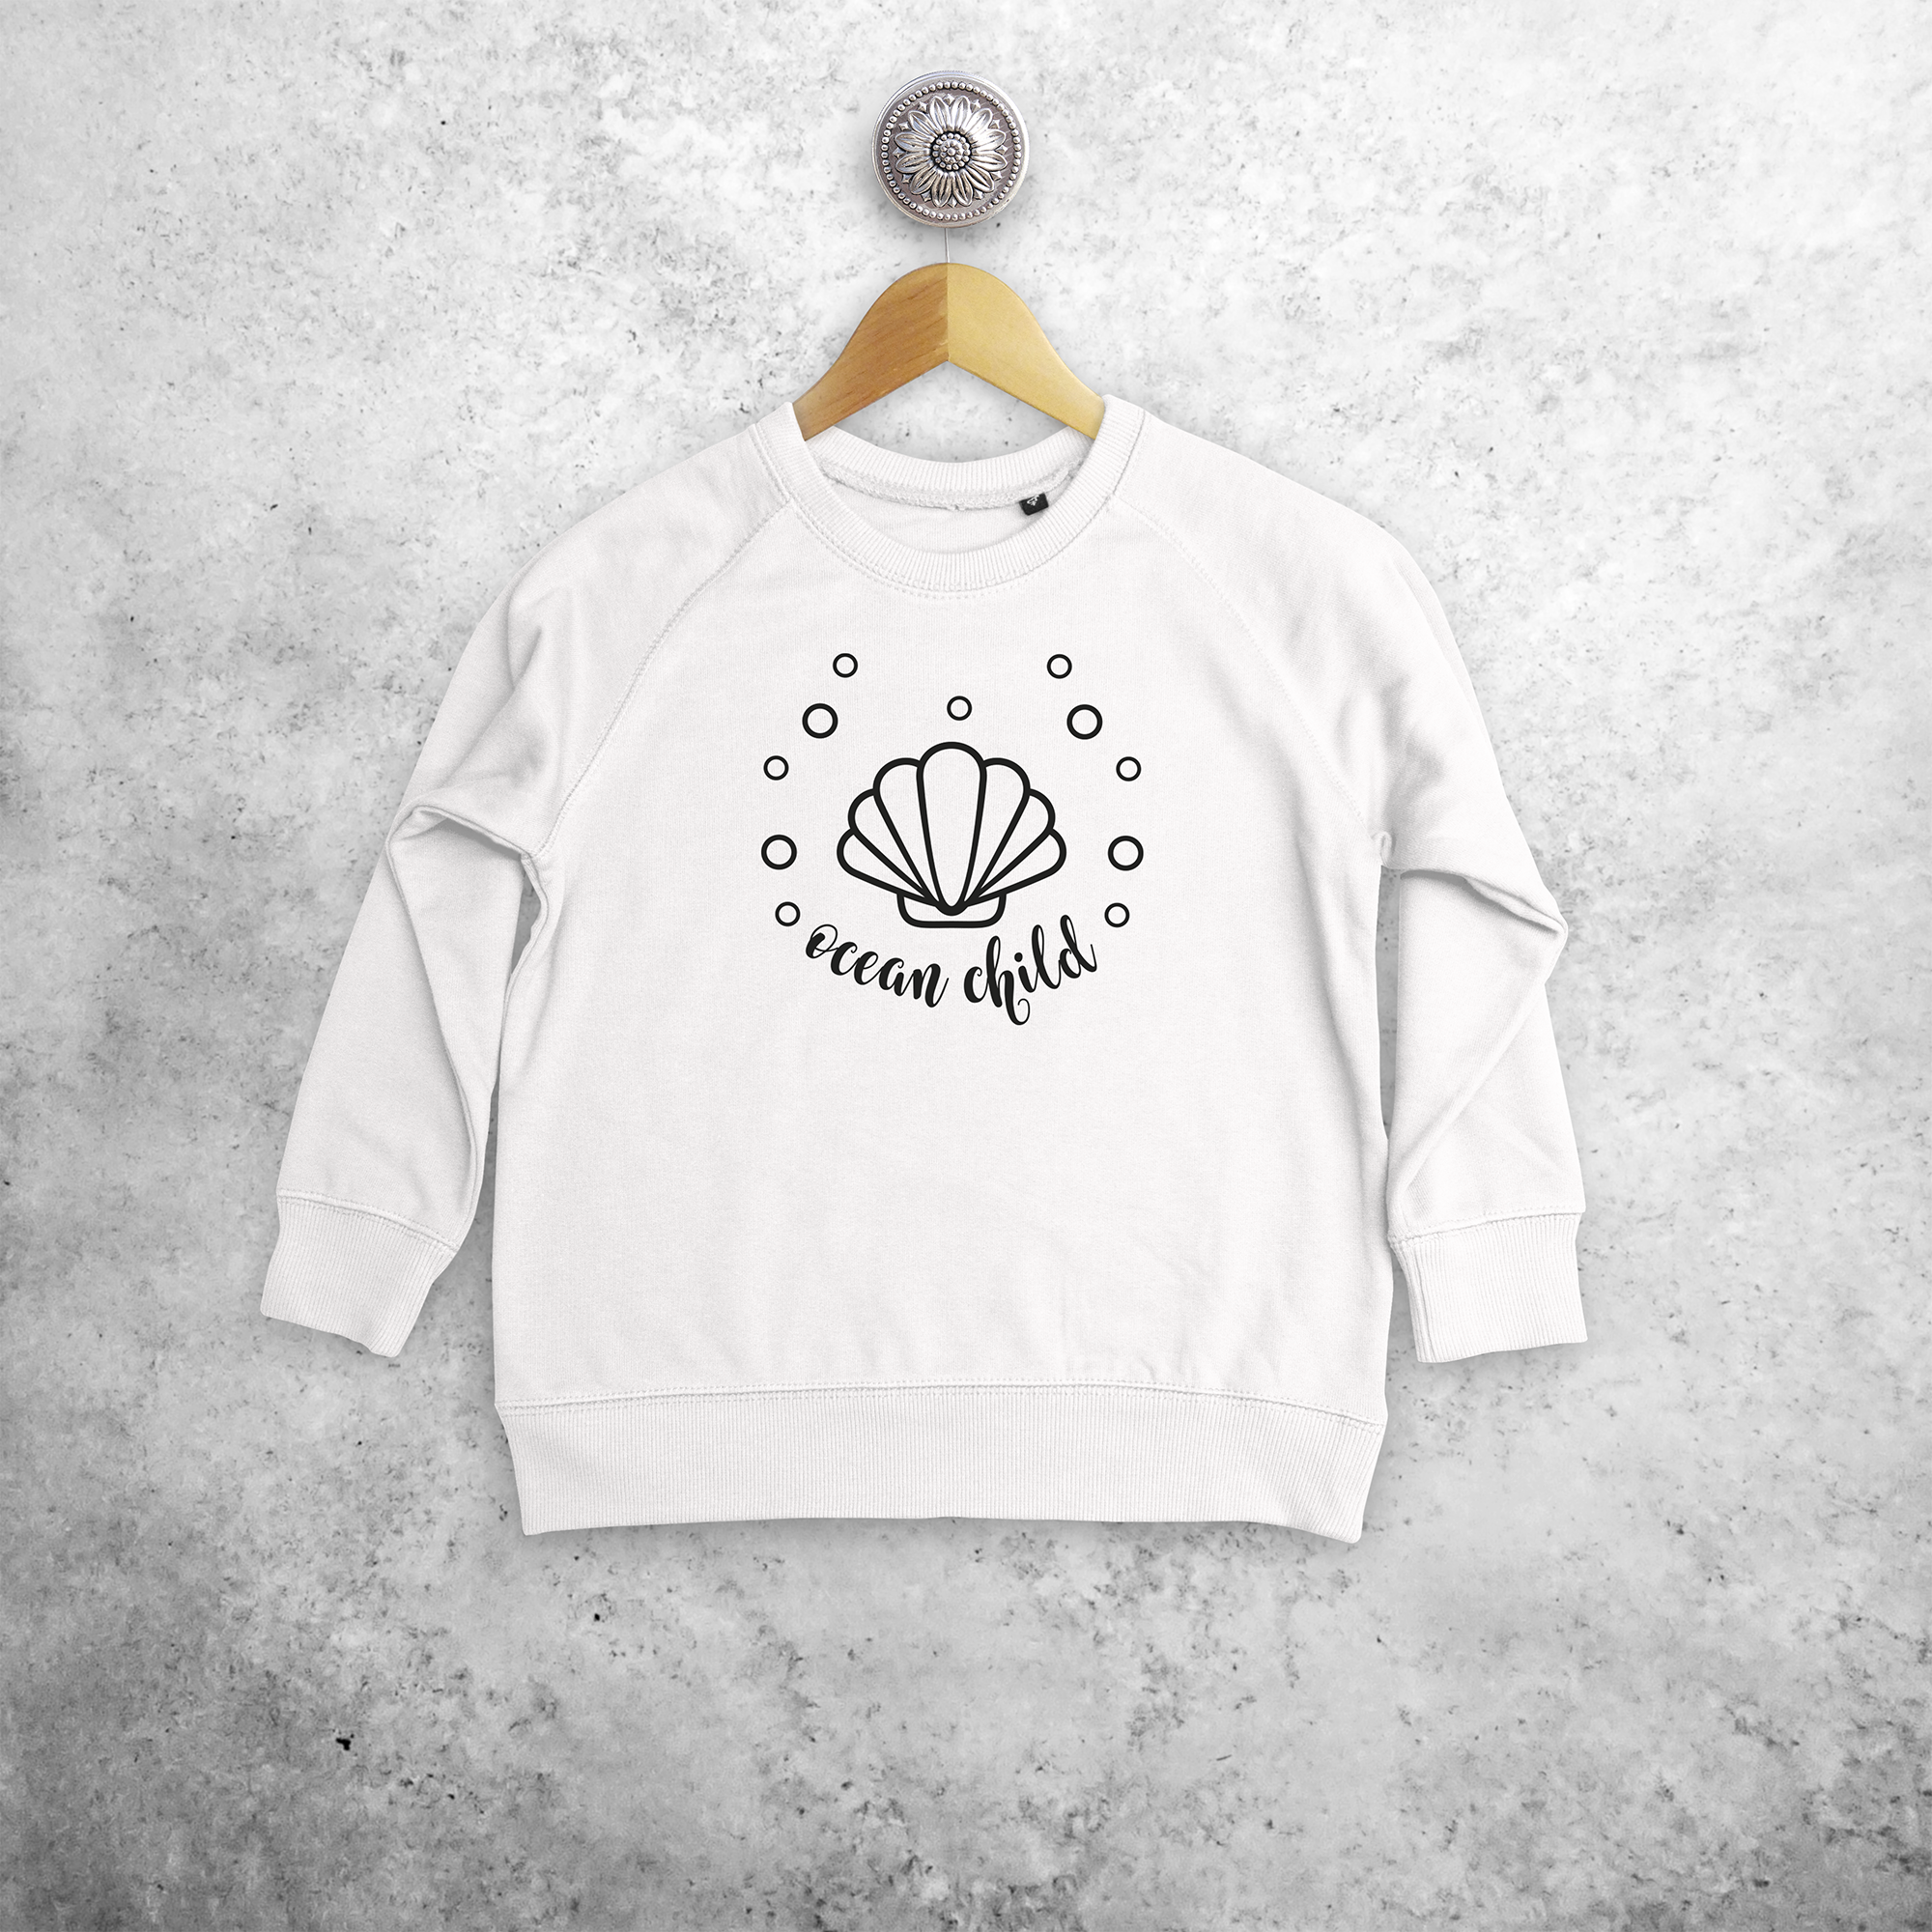 'Ocean child' kids sweater